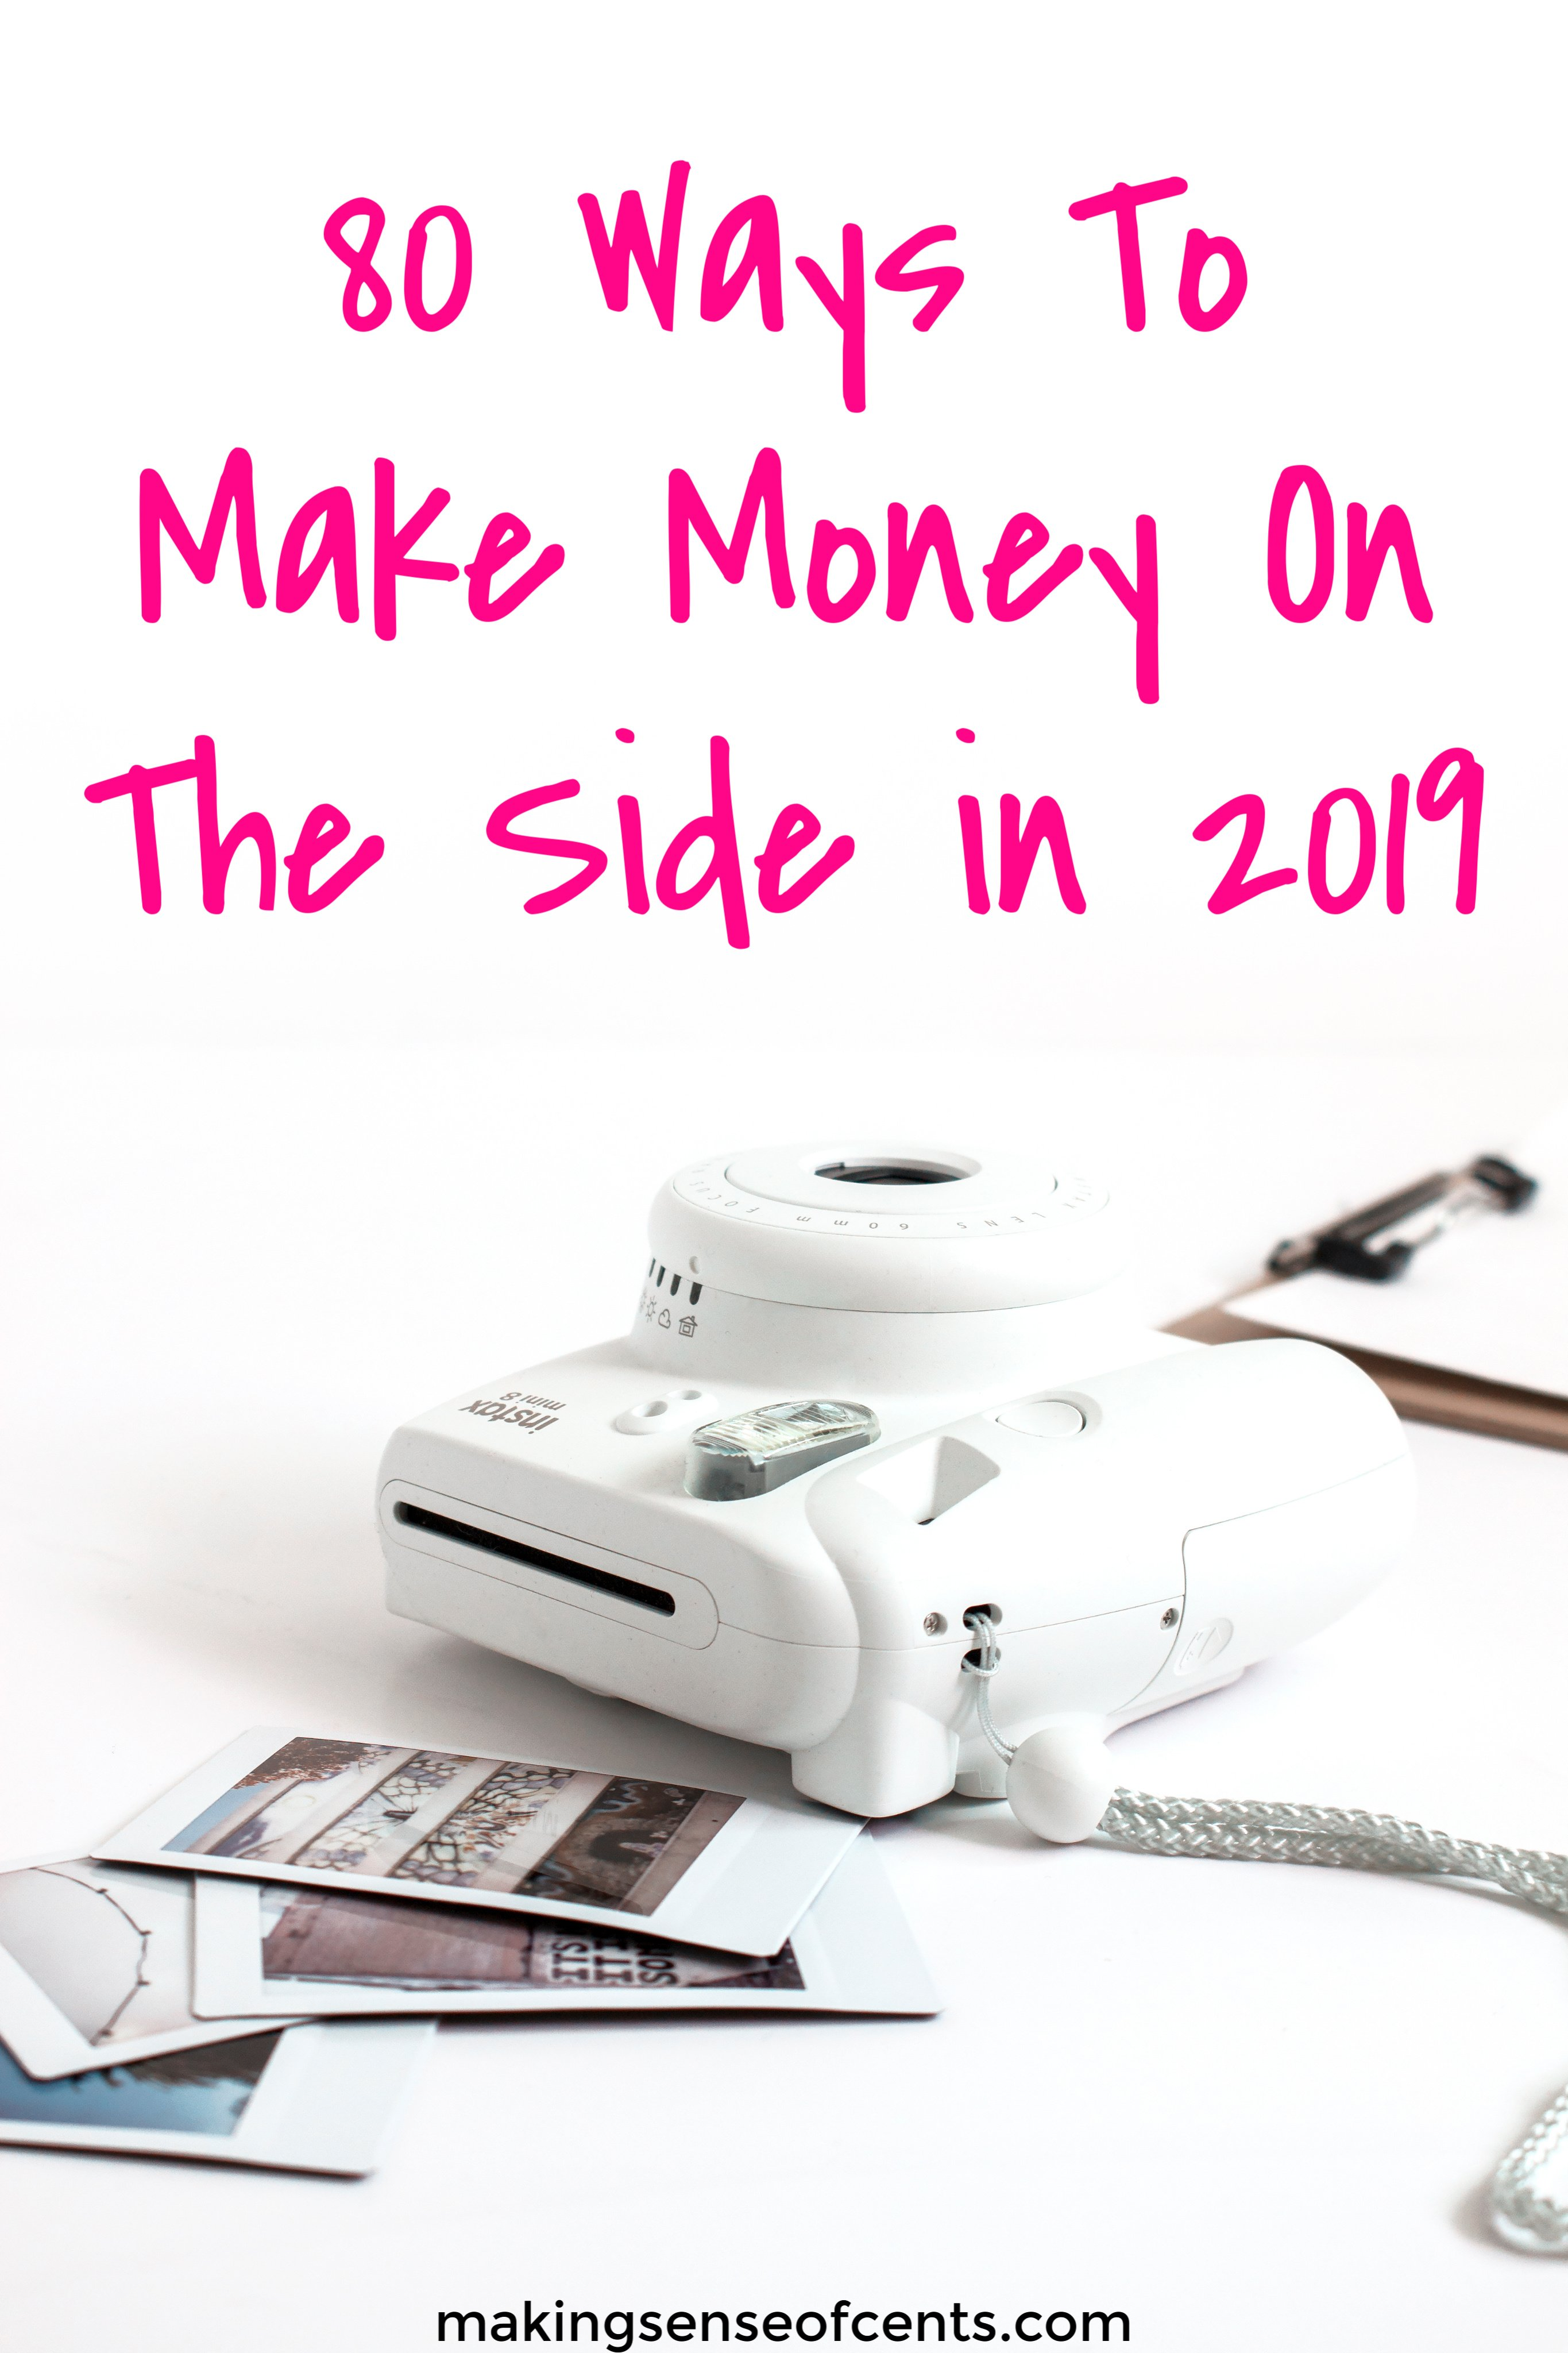 27a3931c 80 Ways To Make Money On The Side in 2019 - Making Sense Of Cents